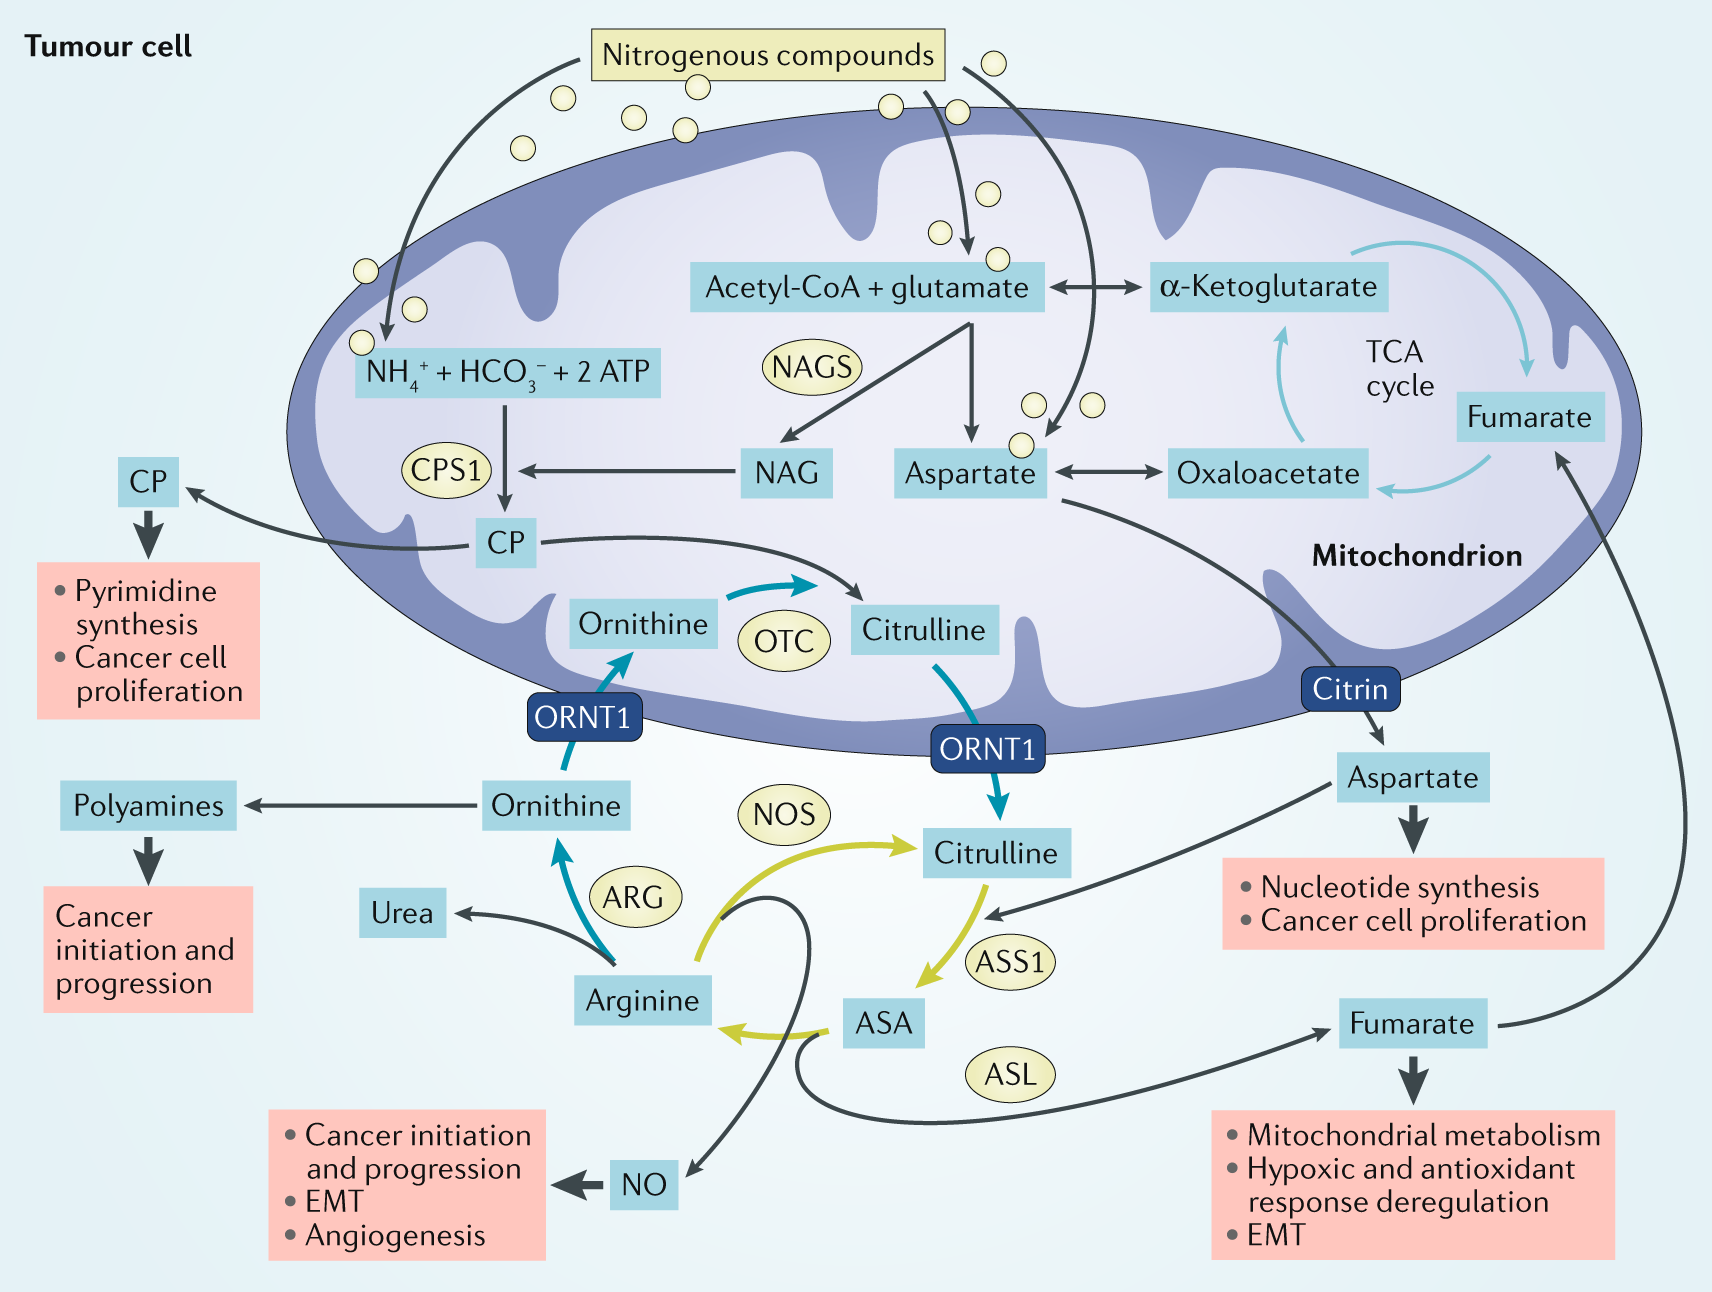 Rewiring urea cycle metabolism in cancer to support